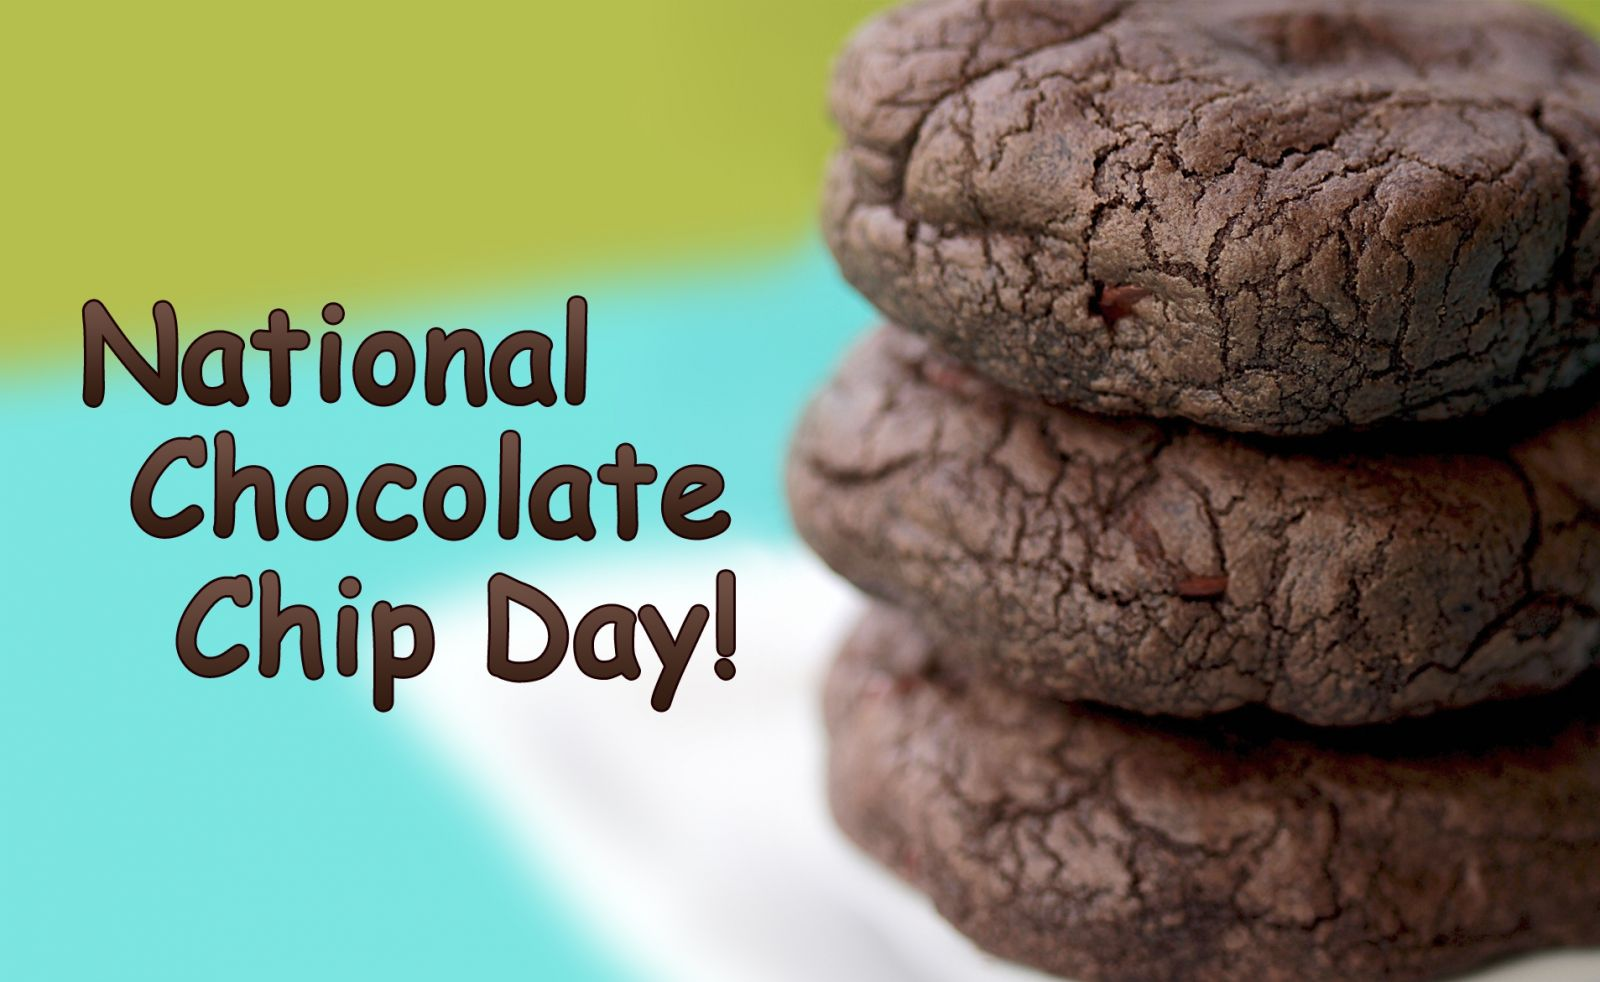 National Chocolate Chip Day 2019: Quotes, Messages, Greetings & Best Ways To Celebrate